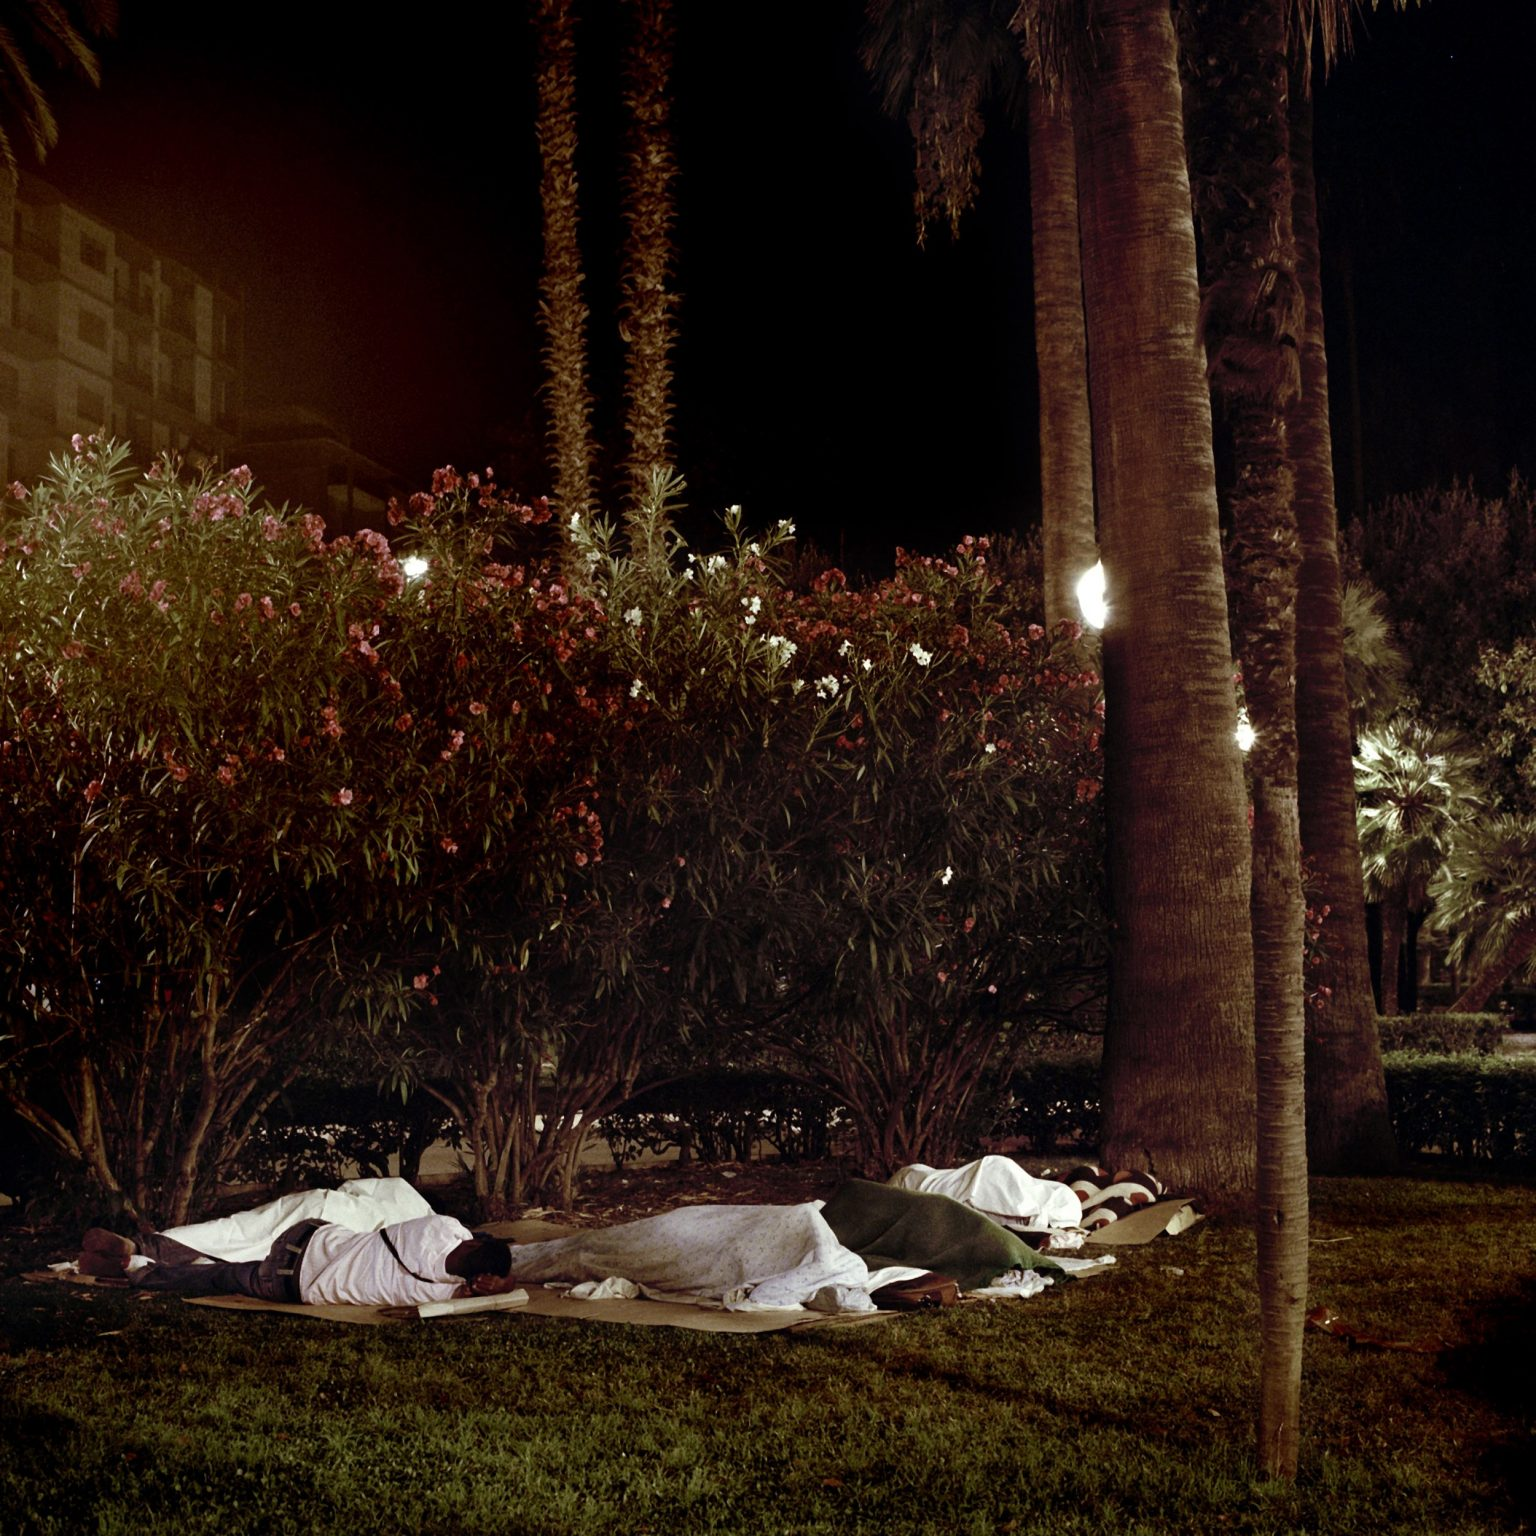 In the public gardens in the city of Bari immigrants sleeping on the grass.